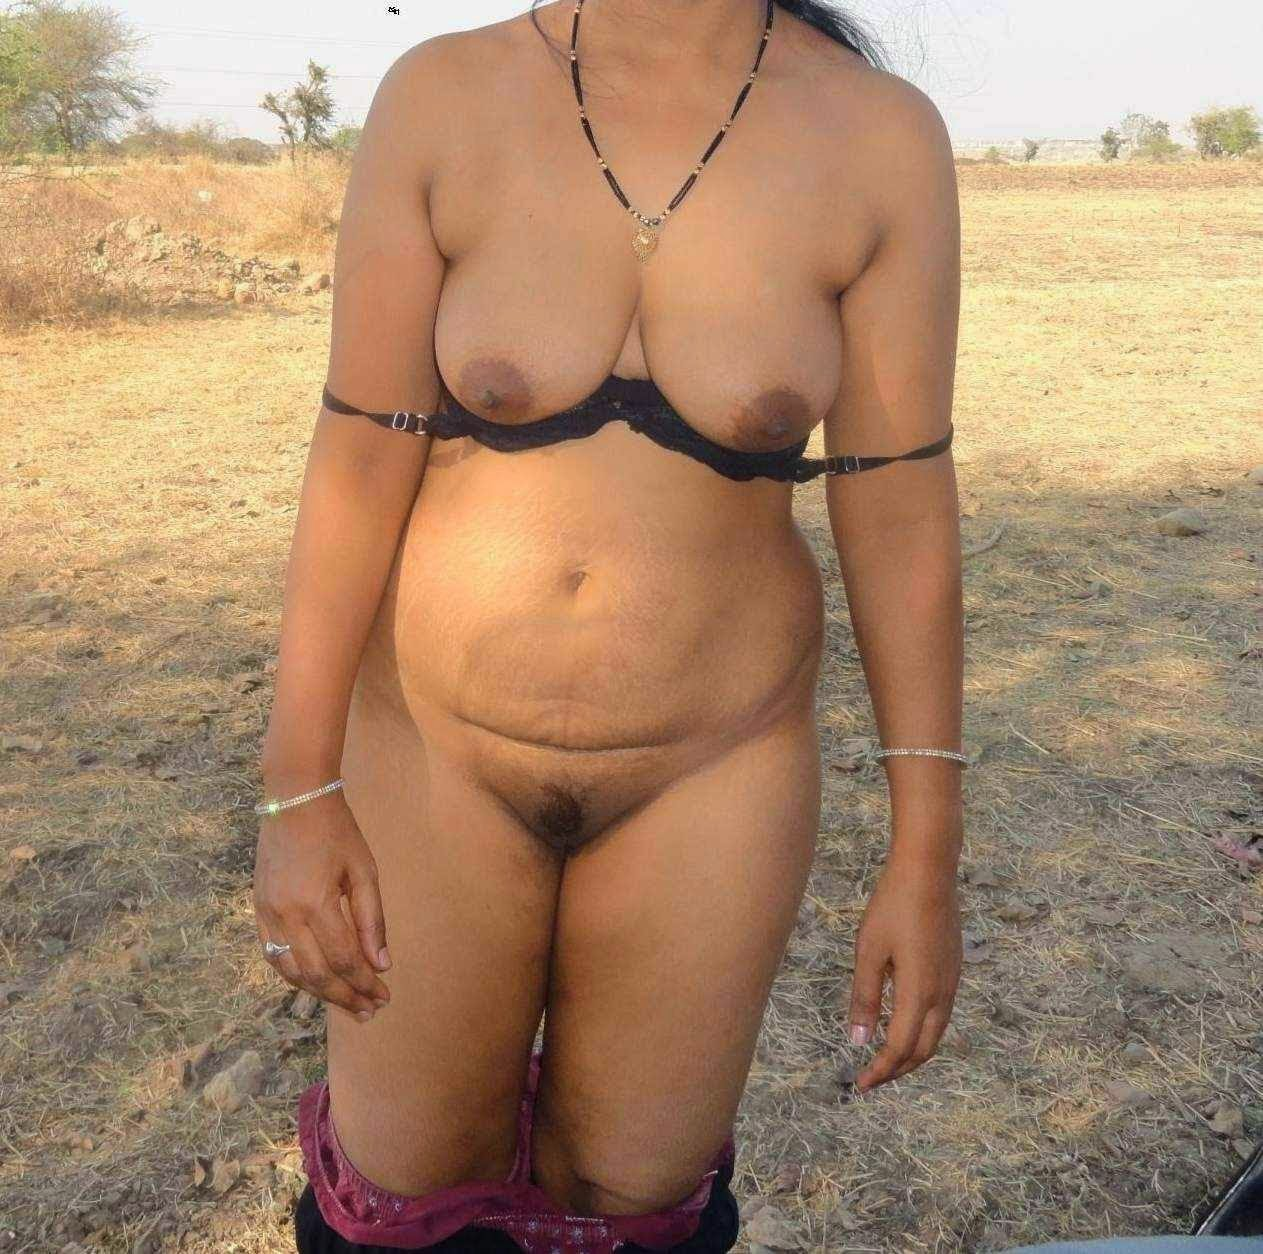 malayalam sex sight